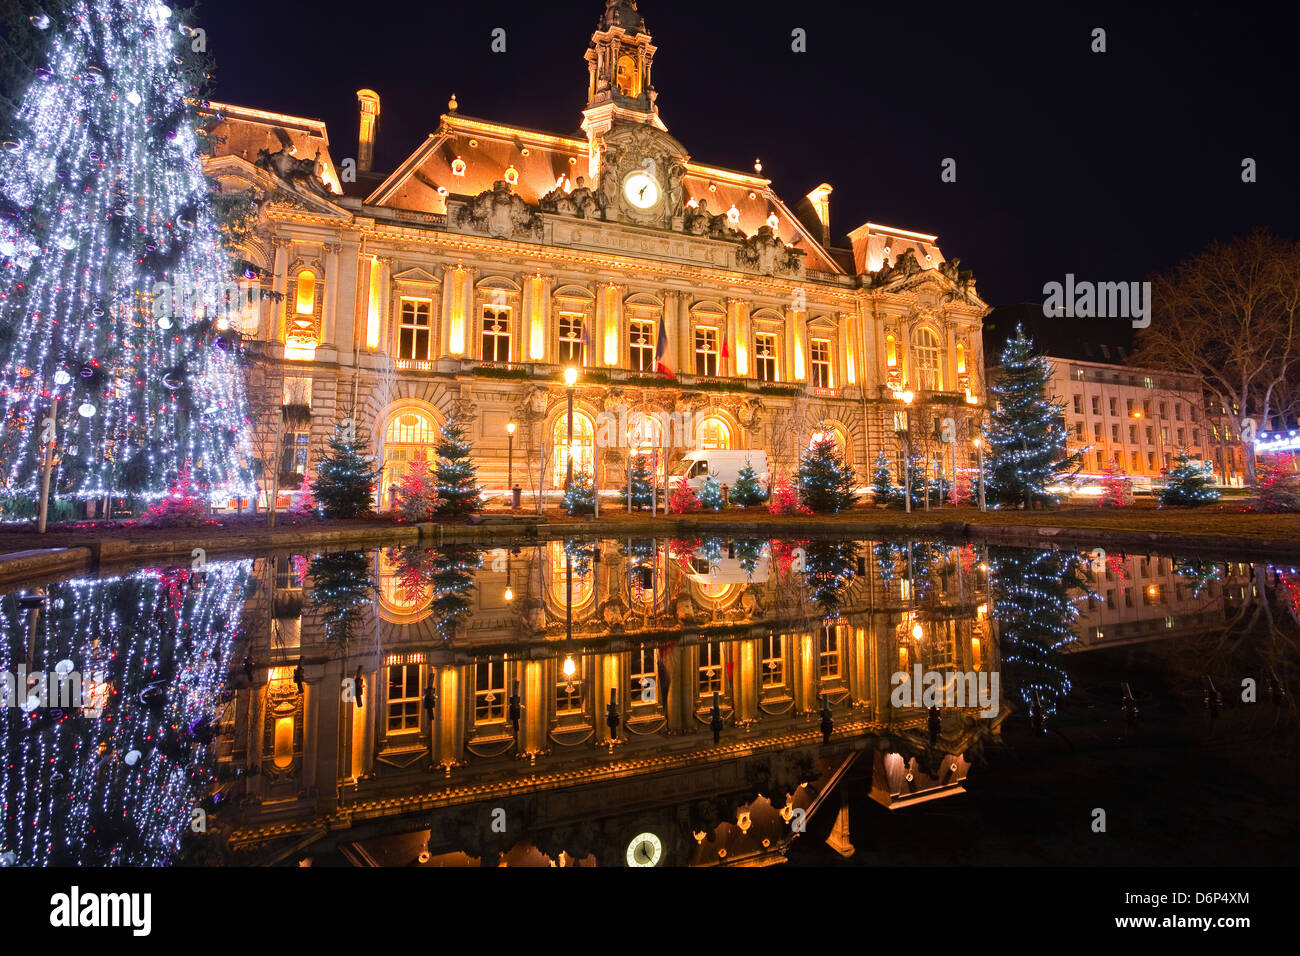 The Mairie (town hall) of Tours lit up with Christmas lights, Tours, Indre-et-Loire, France, Europe - Stock Image